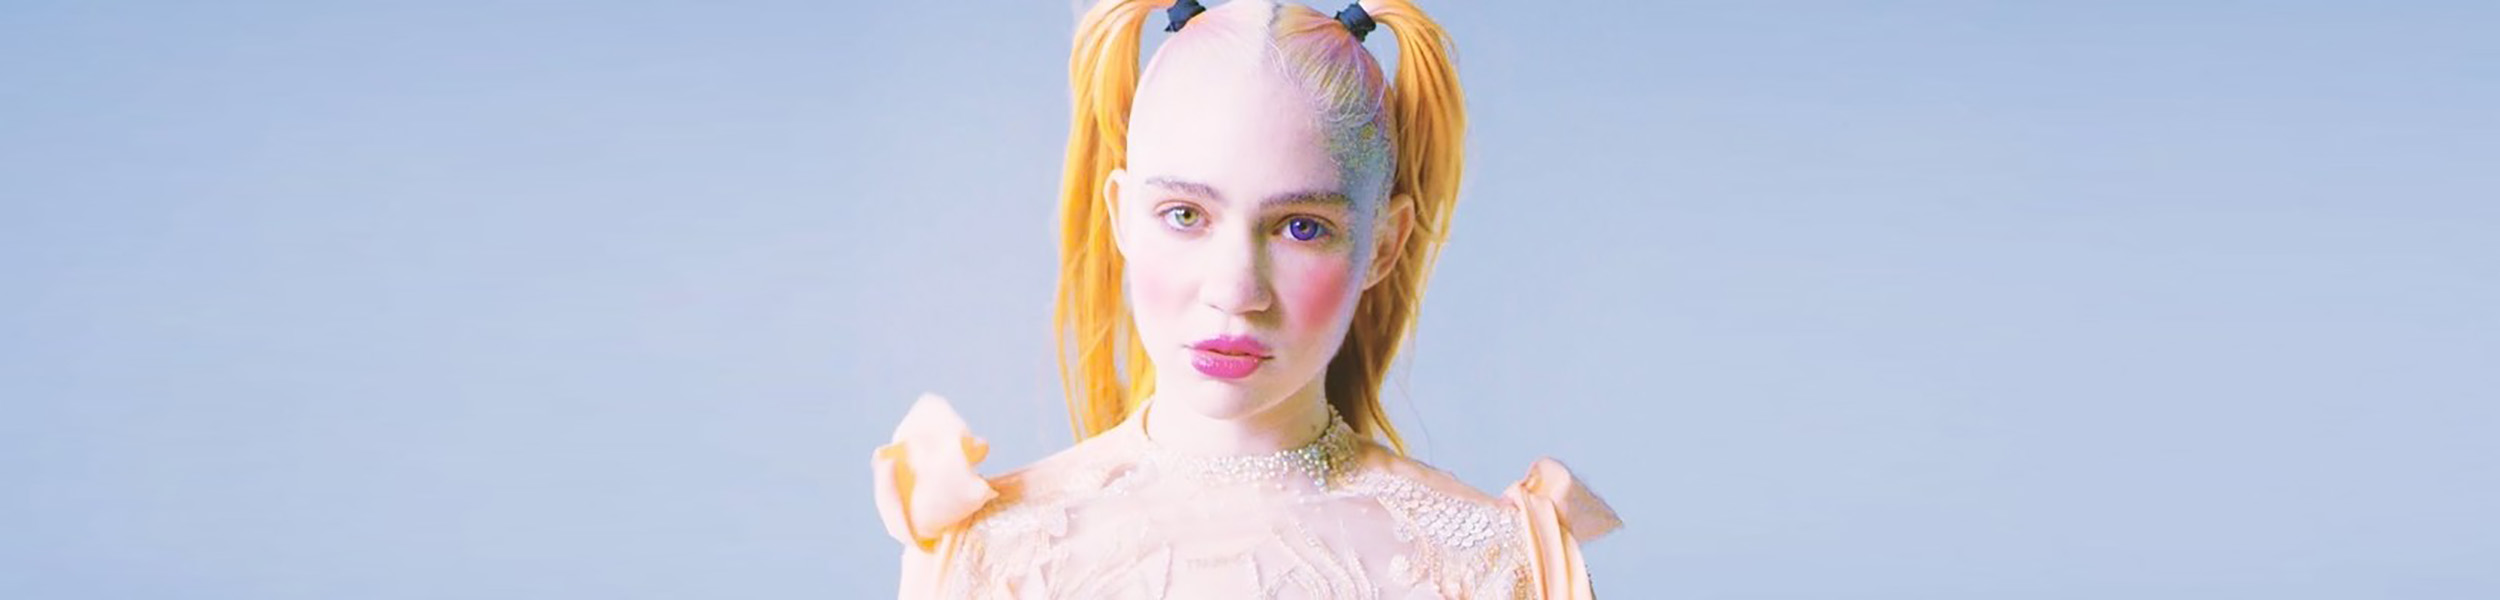 Grimes - 'IDORU' Video Out Now